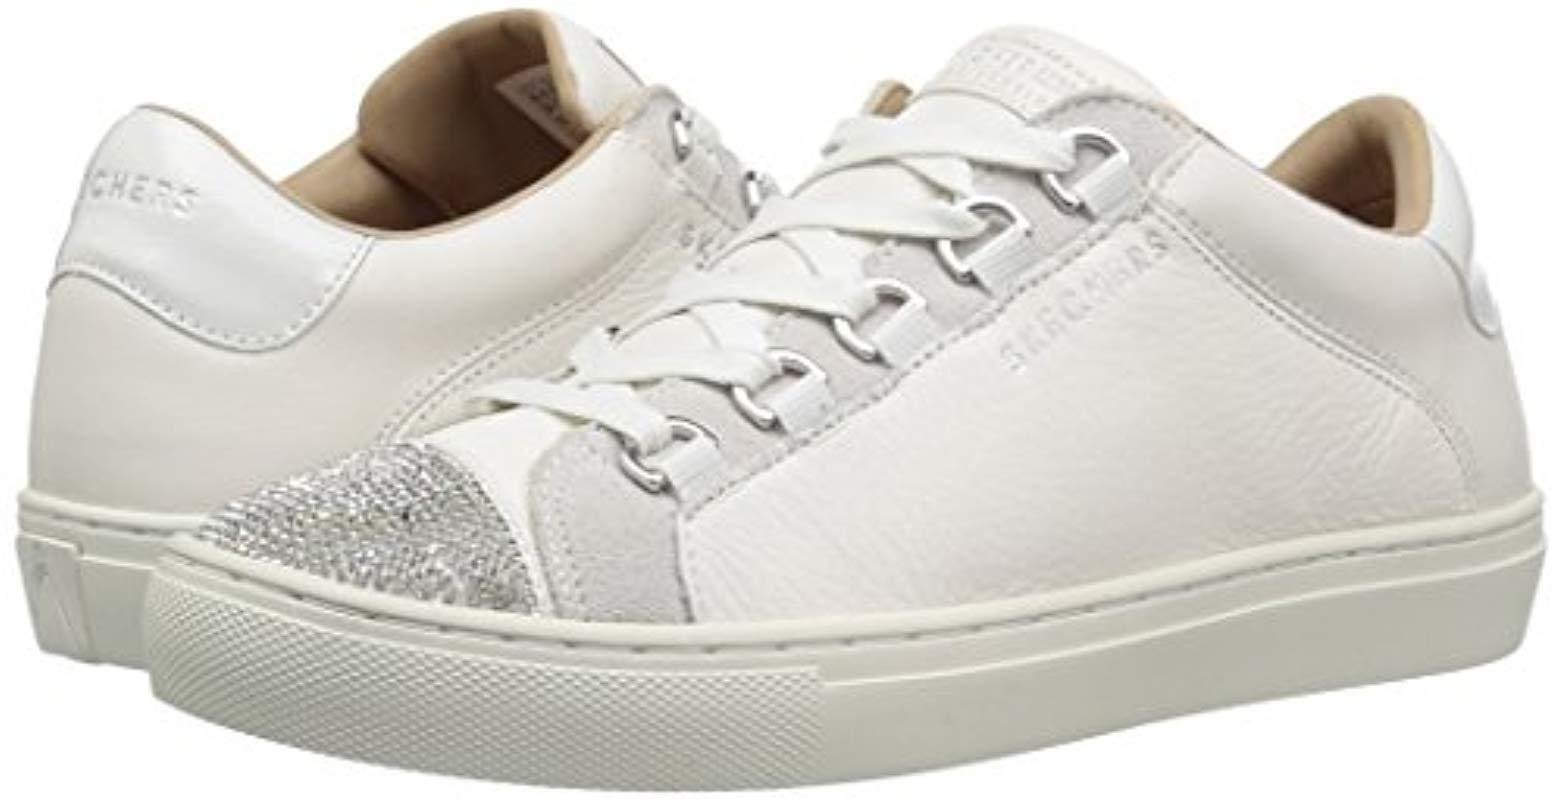 Side Street 73531-wht Skechers de color Blanco - 35 % de descuento